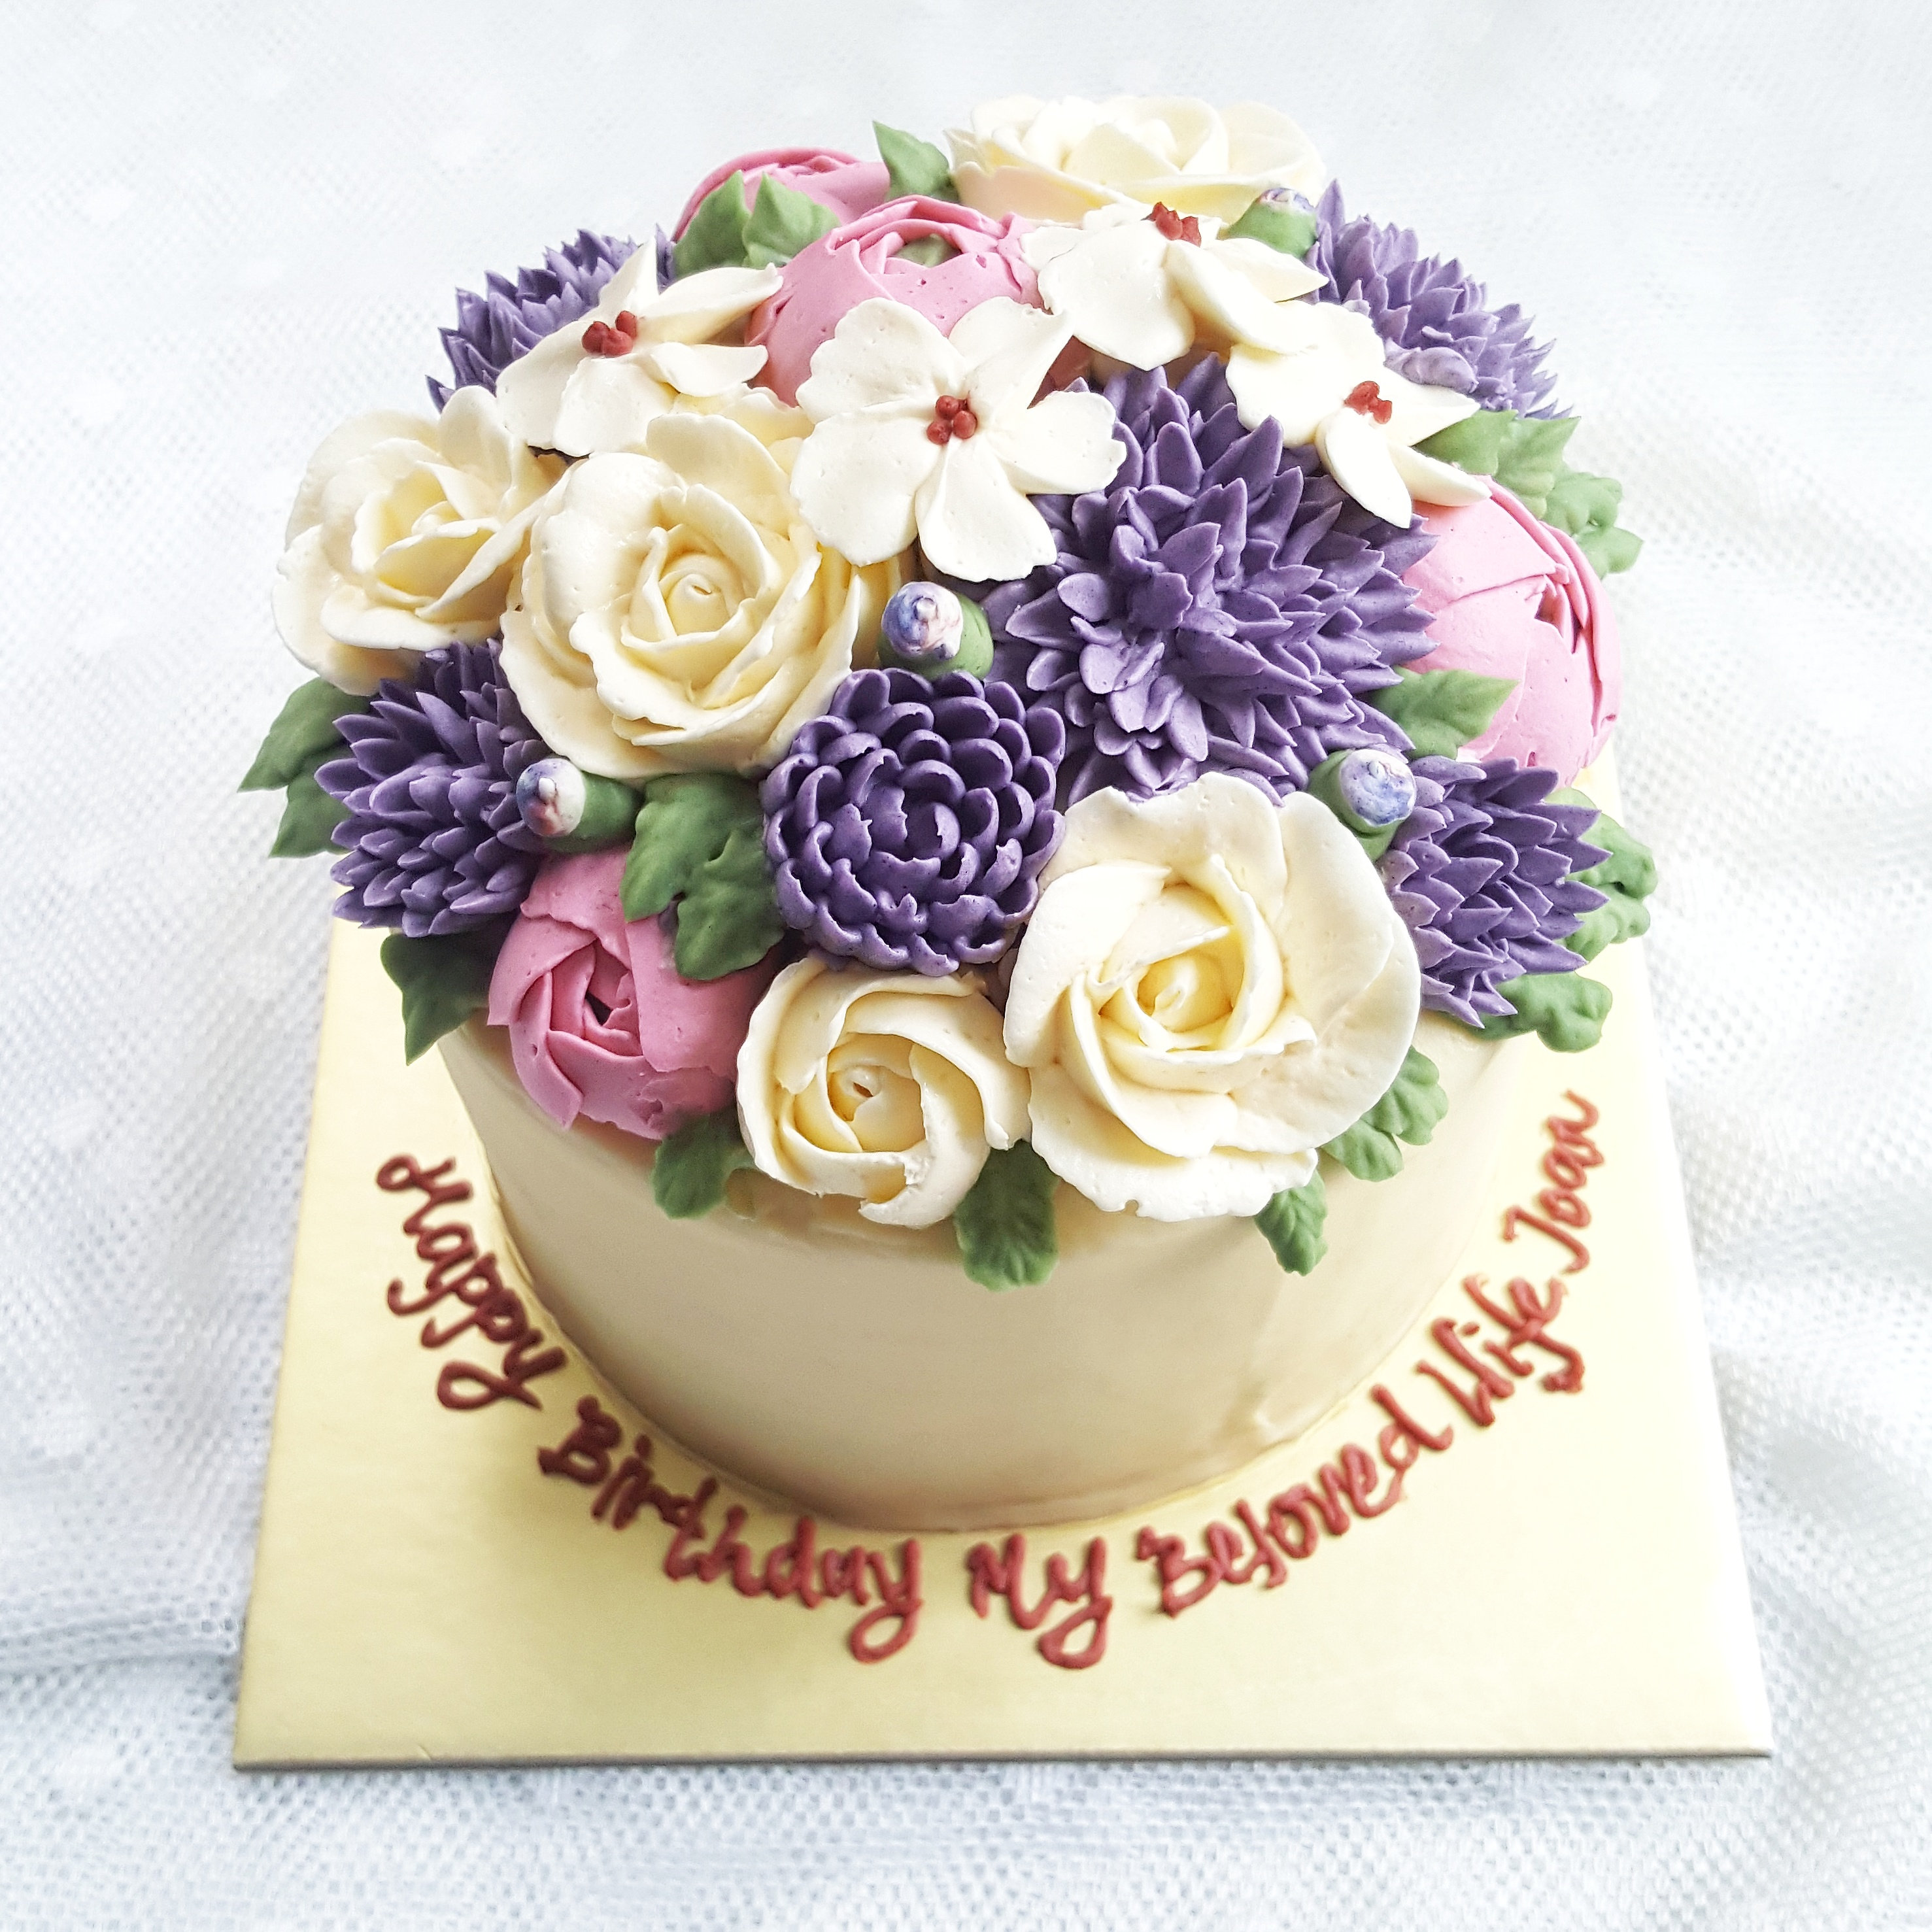 Singapore buttercream floral cake full blossom every flower is piped individually with lots of love a elegant cake for a lady who loves both cakes and flowers like nanatang open for customisation of dhlflorist Images